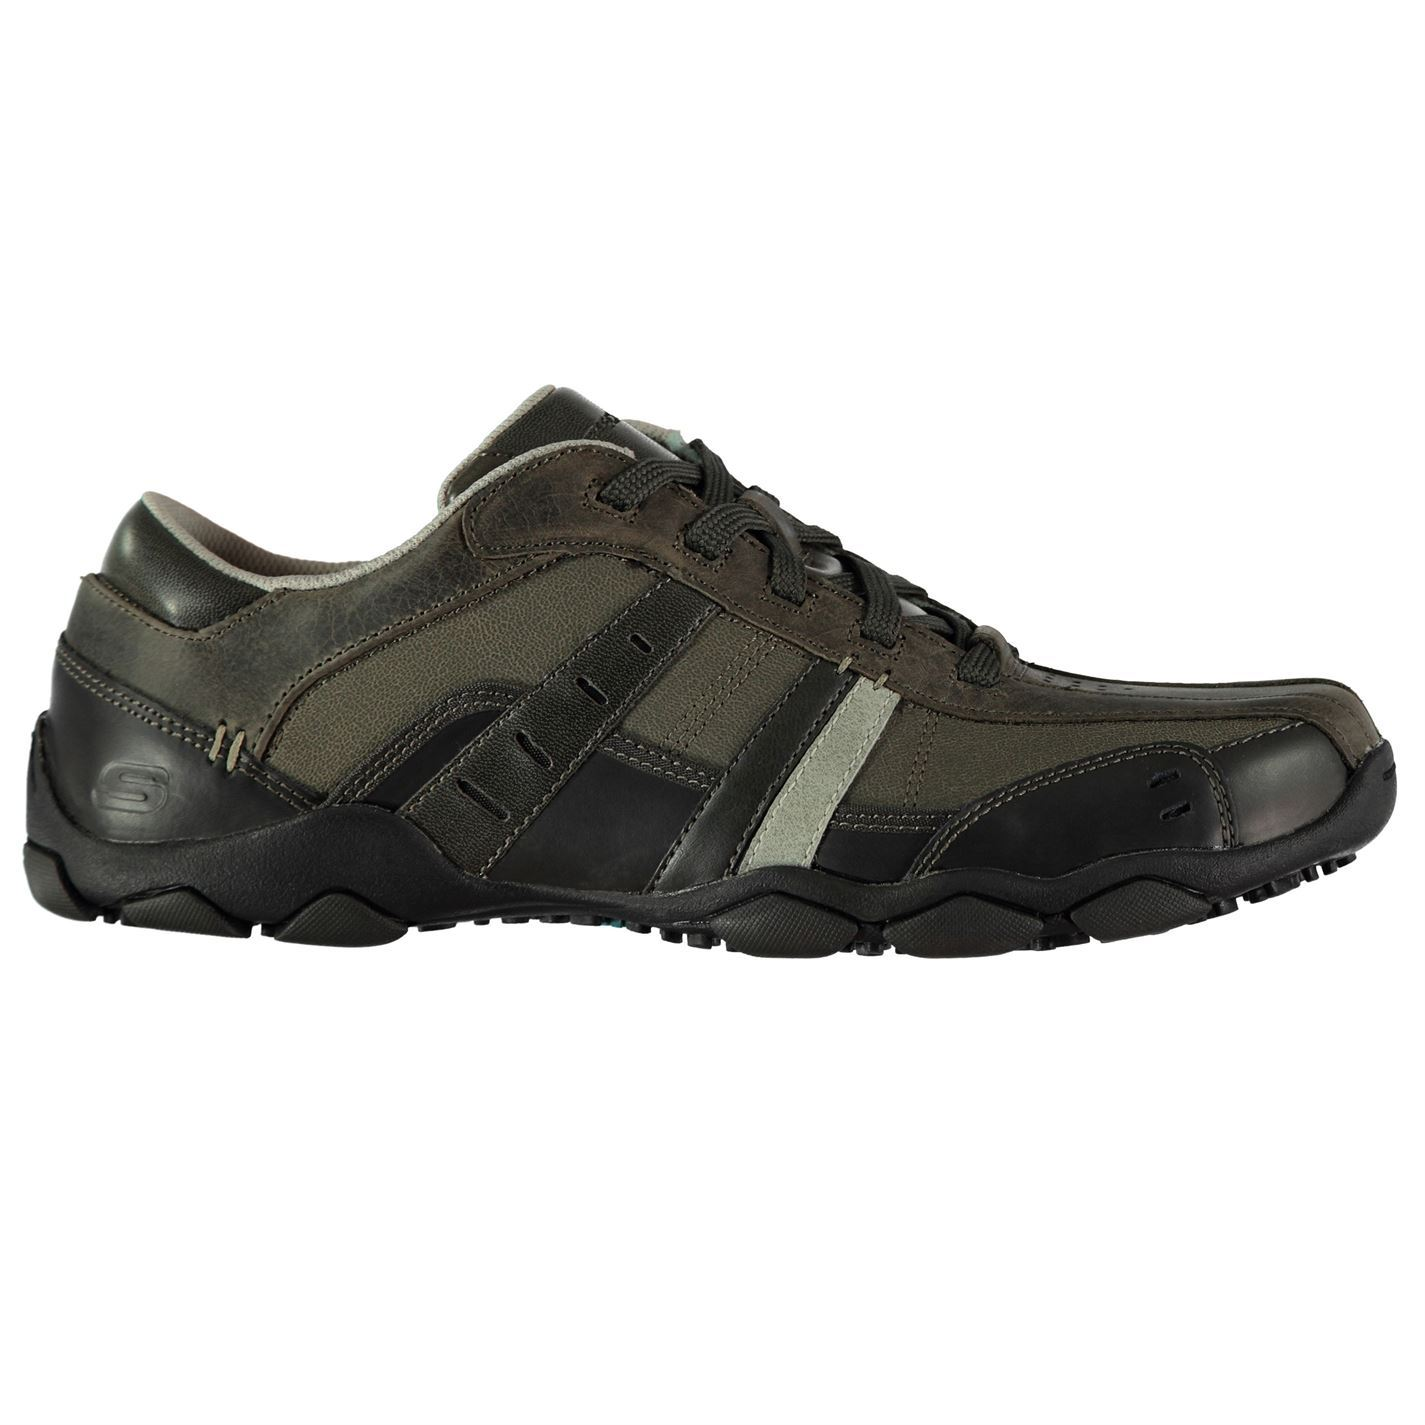 Skechers Uomo Diam Vasse Sneakers  Uomo Skechers Gents Everyday Schuhes Laces Fastened Padded ade65e